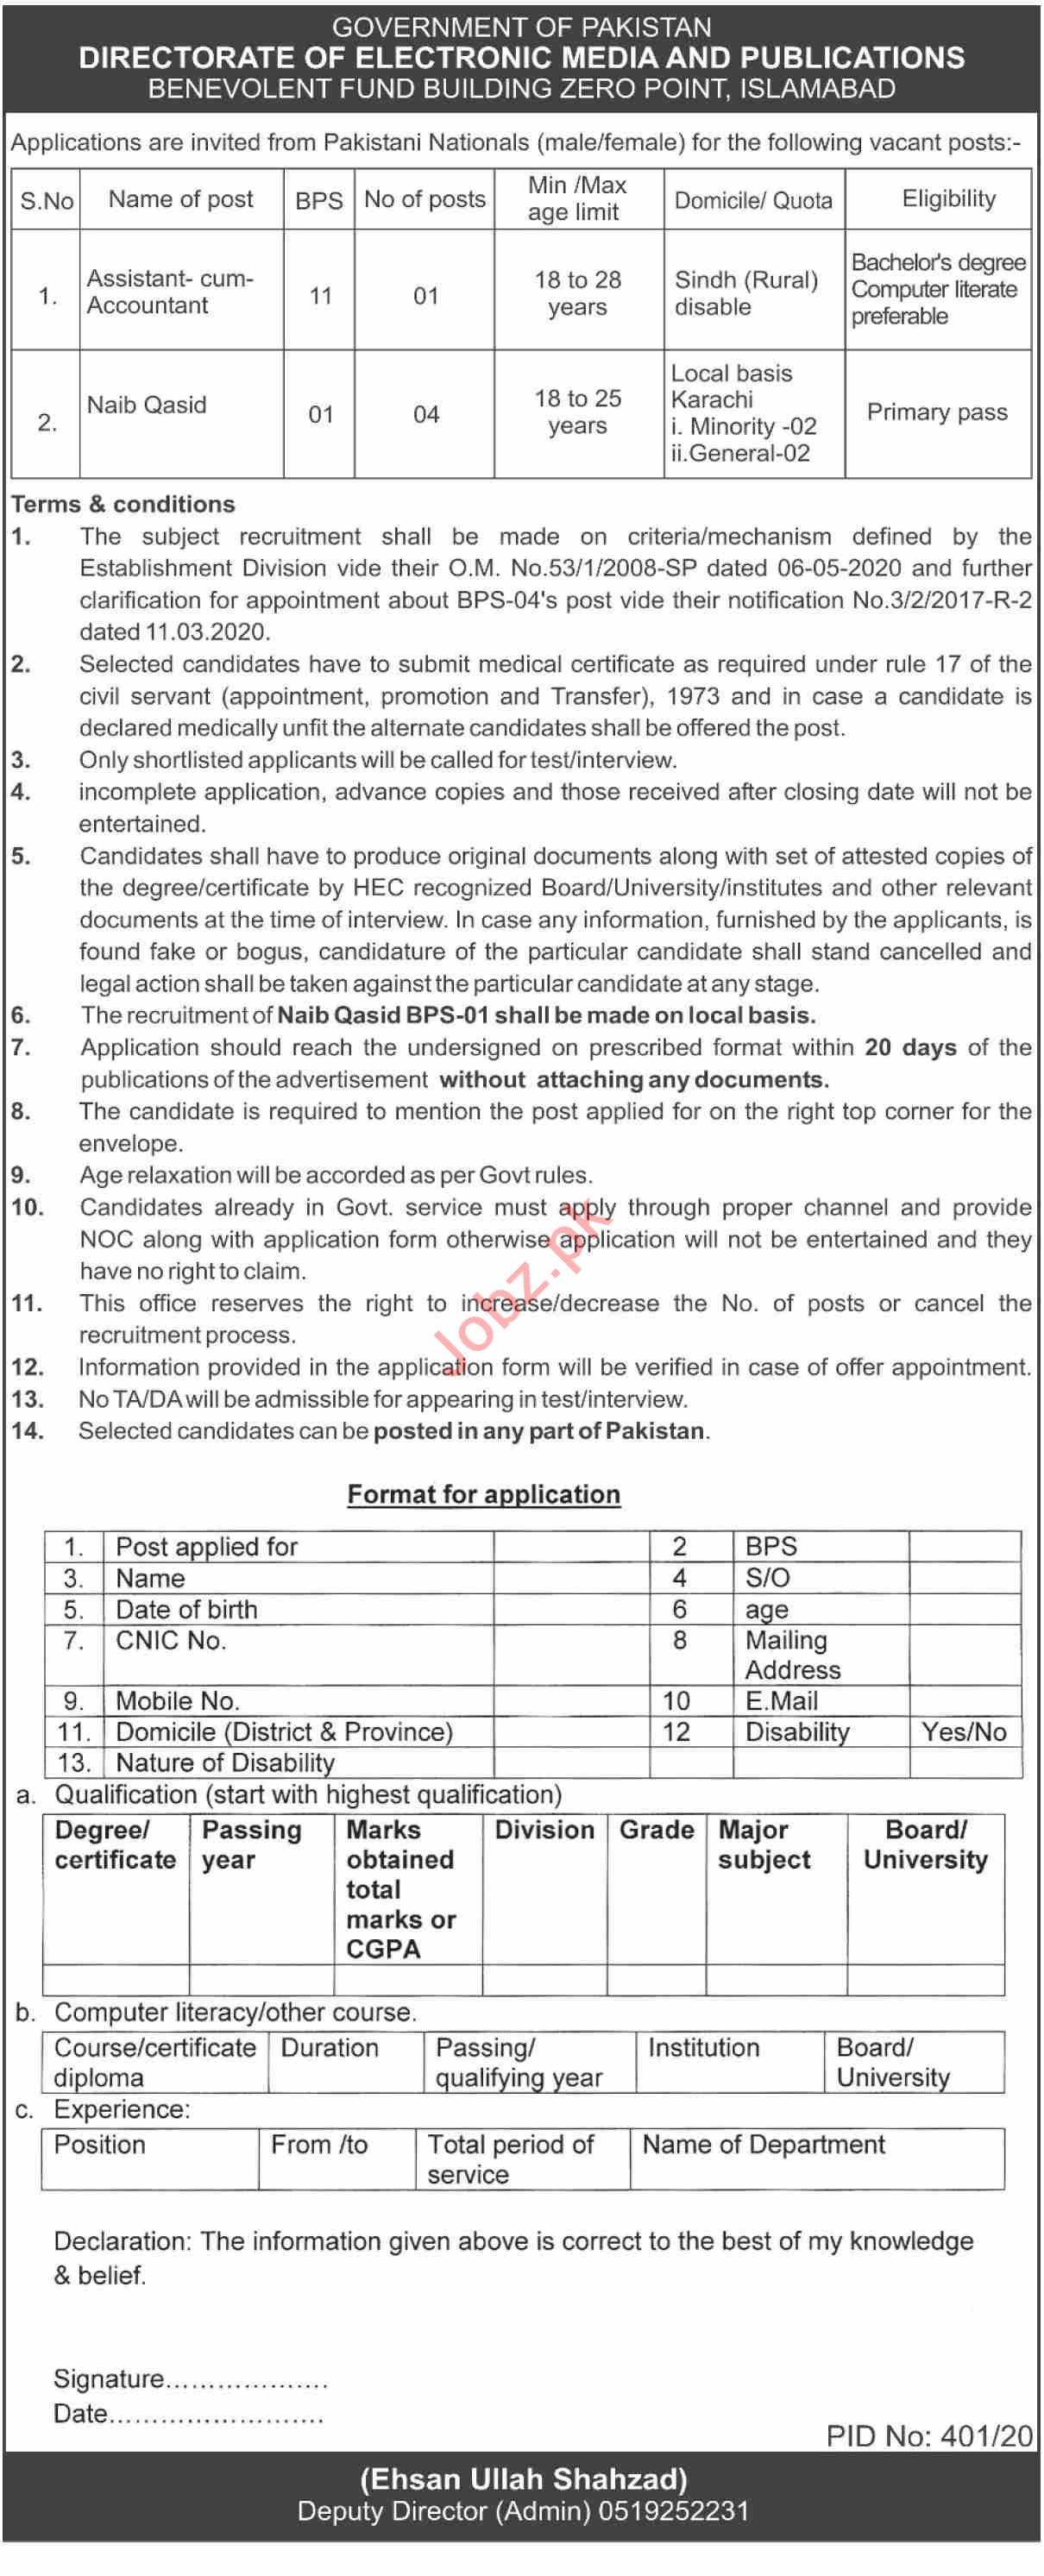 Directorate of Electronic Media & Publications DEMP Jobs 202